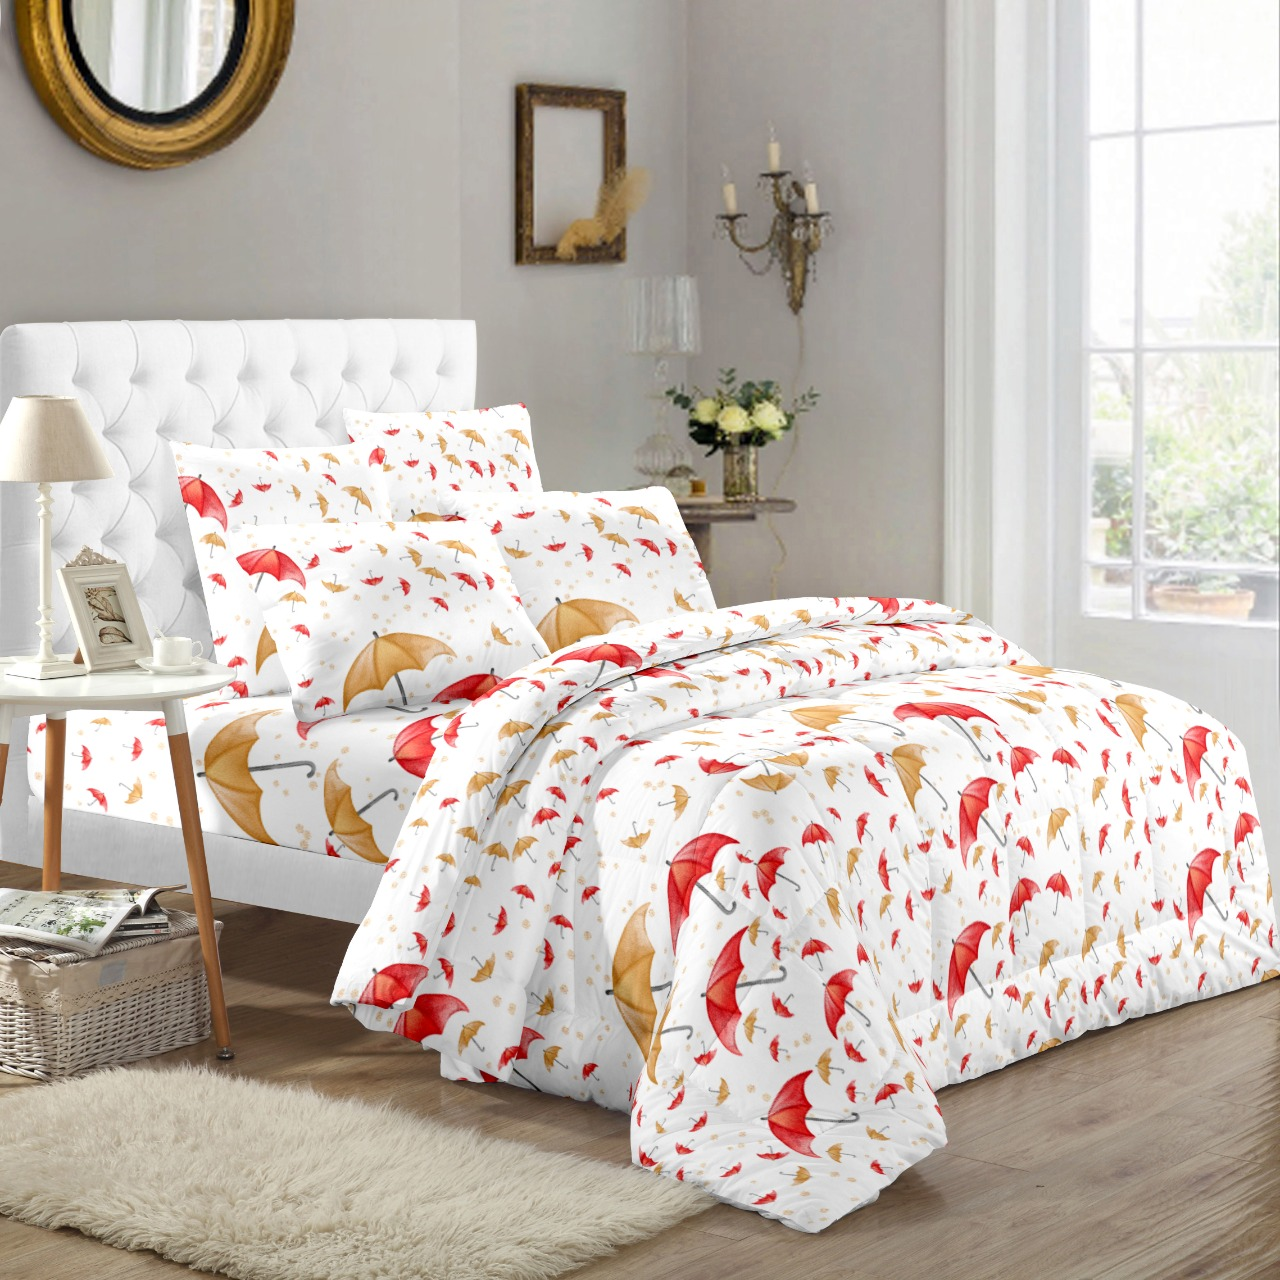 Solitier Cotton King Size Bed Sheet With Two Pillow Cover Wholesaler In Surat Market